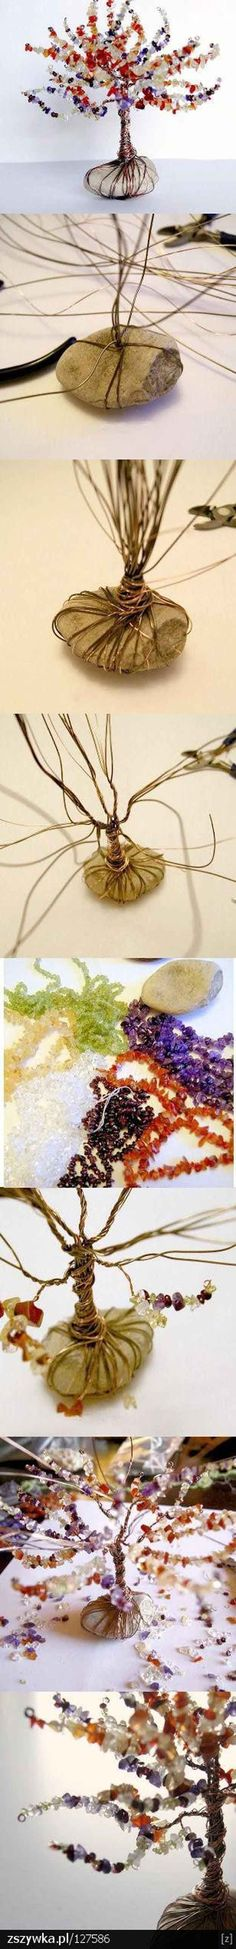 "DIY beads: DIY beads and wire tree ~ wrap a big ""stone"" with ""wire"" and add … - Art Decoration Diy Projects To Try, Crafts To Do, Craft Projects, Arts And Crafts, Craft Ideas, Easy Crafts, Diy Ideas, Decor Ideas, Cool Crafts"